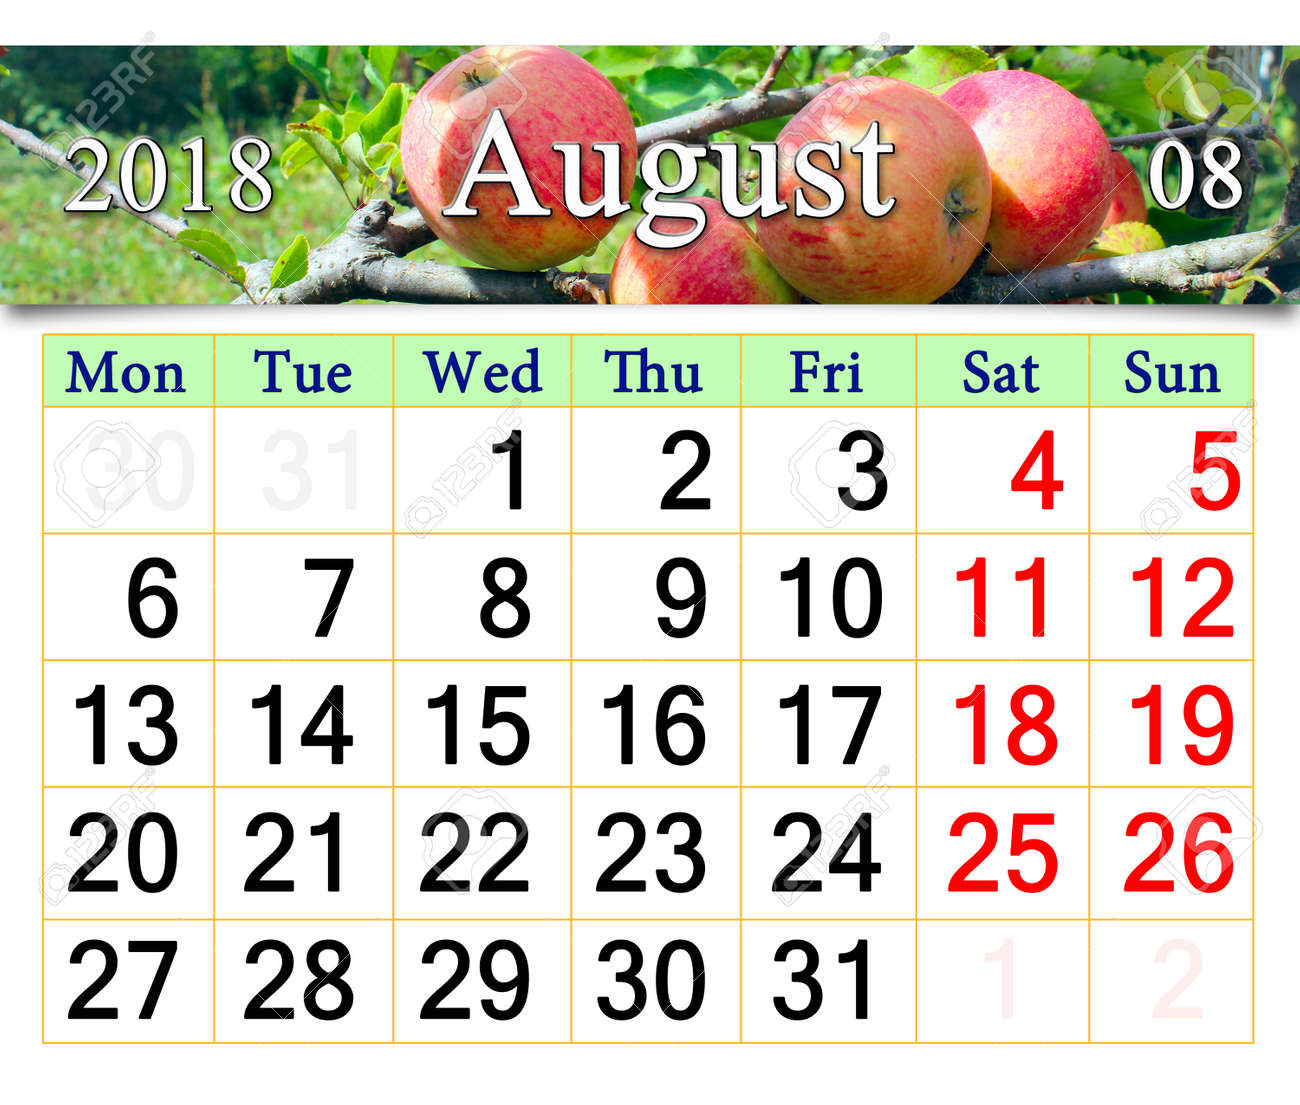 Usi Calendar.Beautiful Calendar For August 2018 Year With Ripe Apples On The